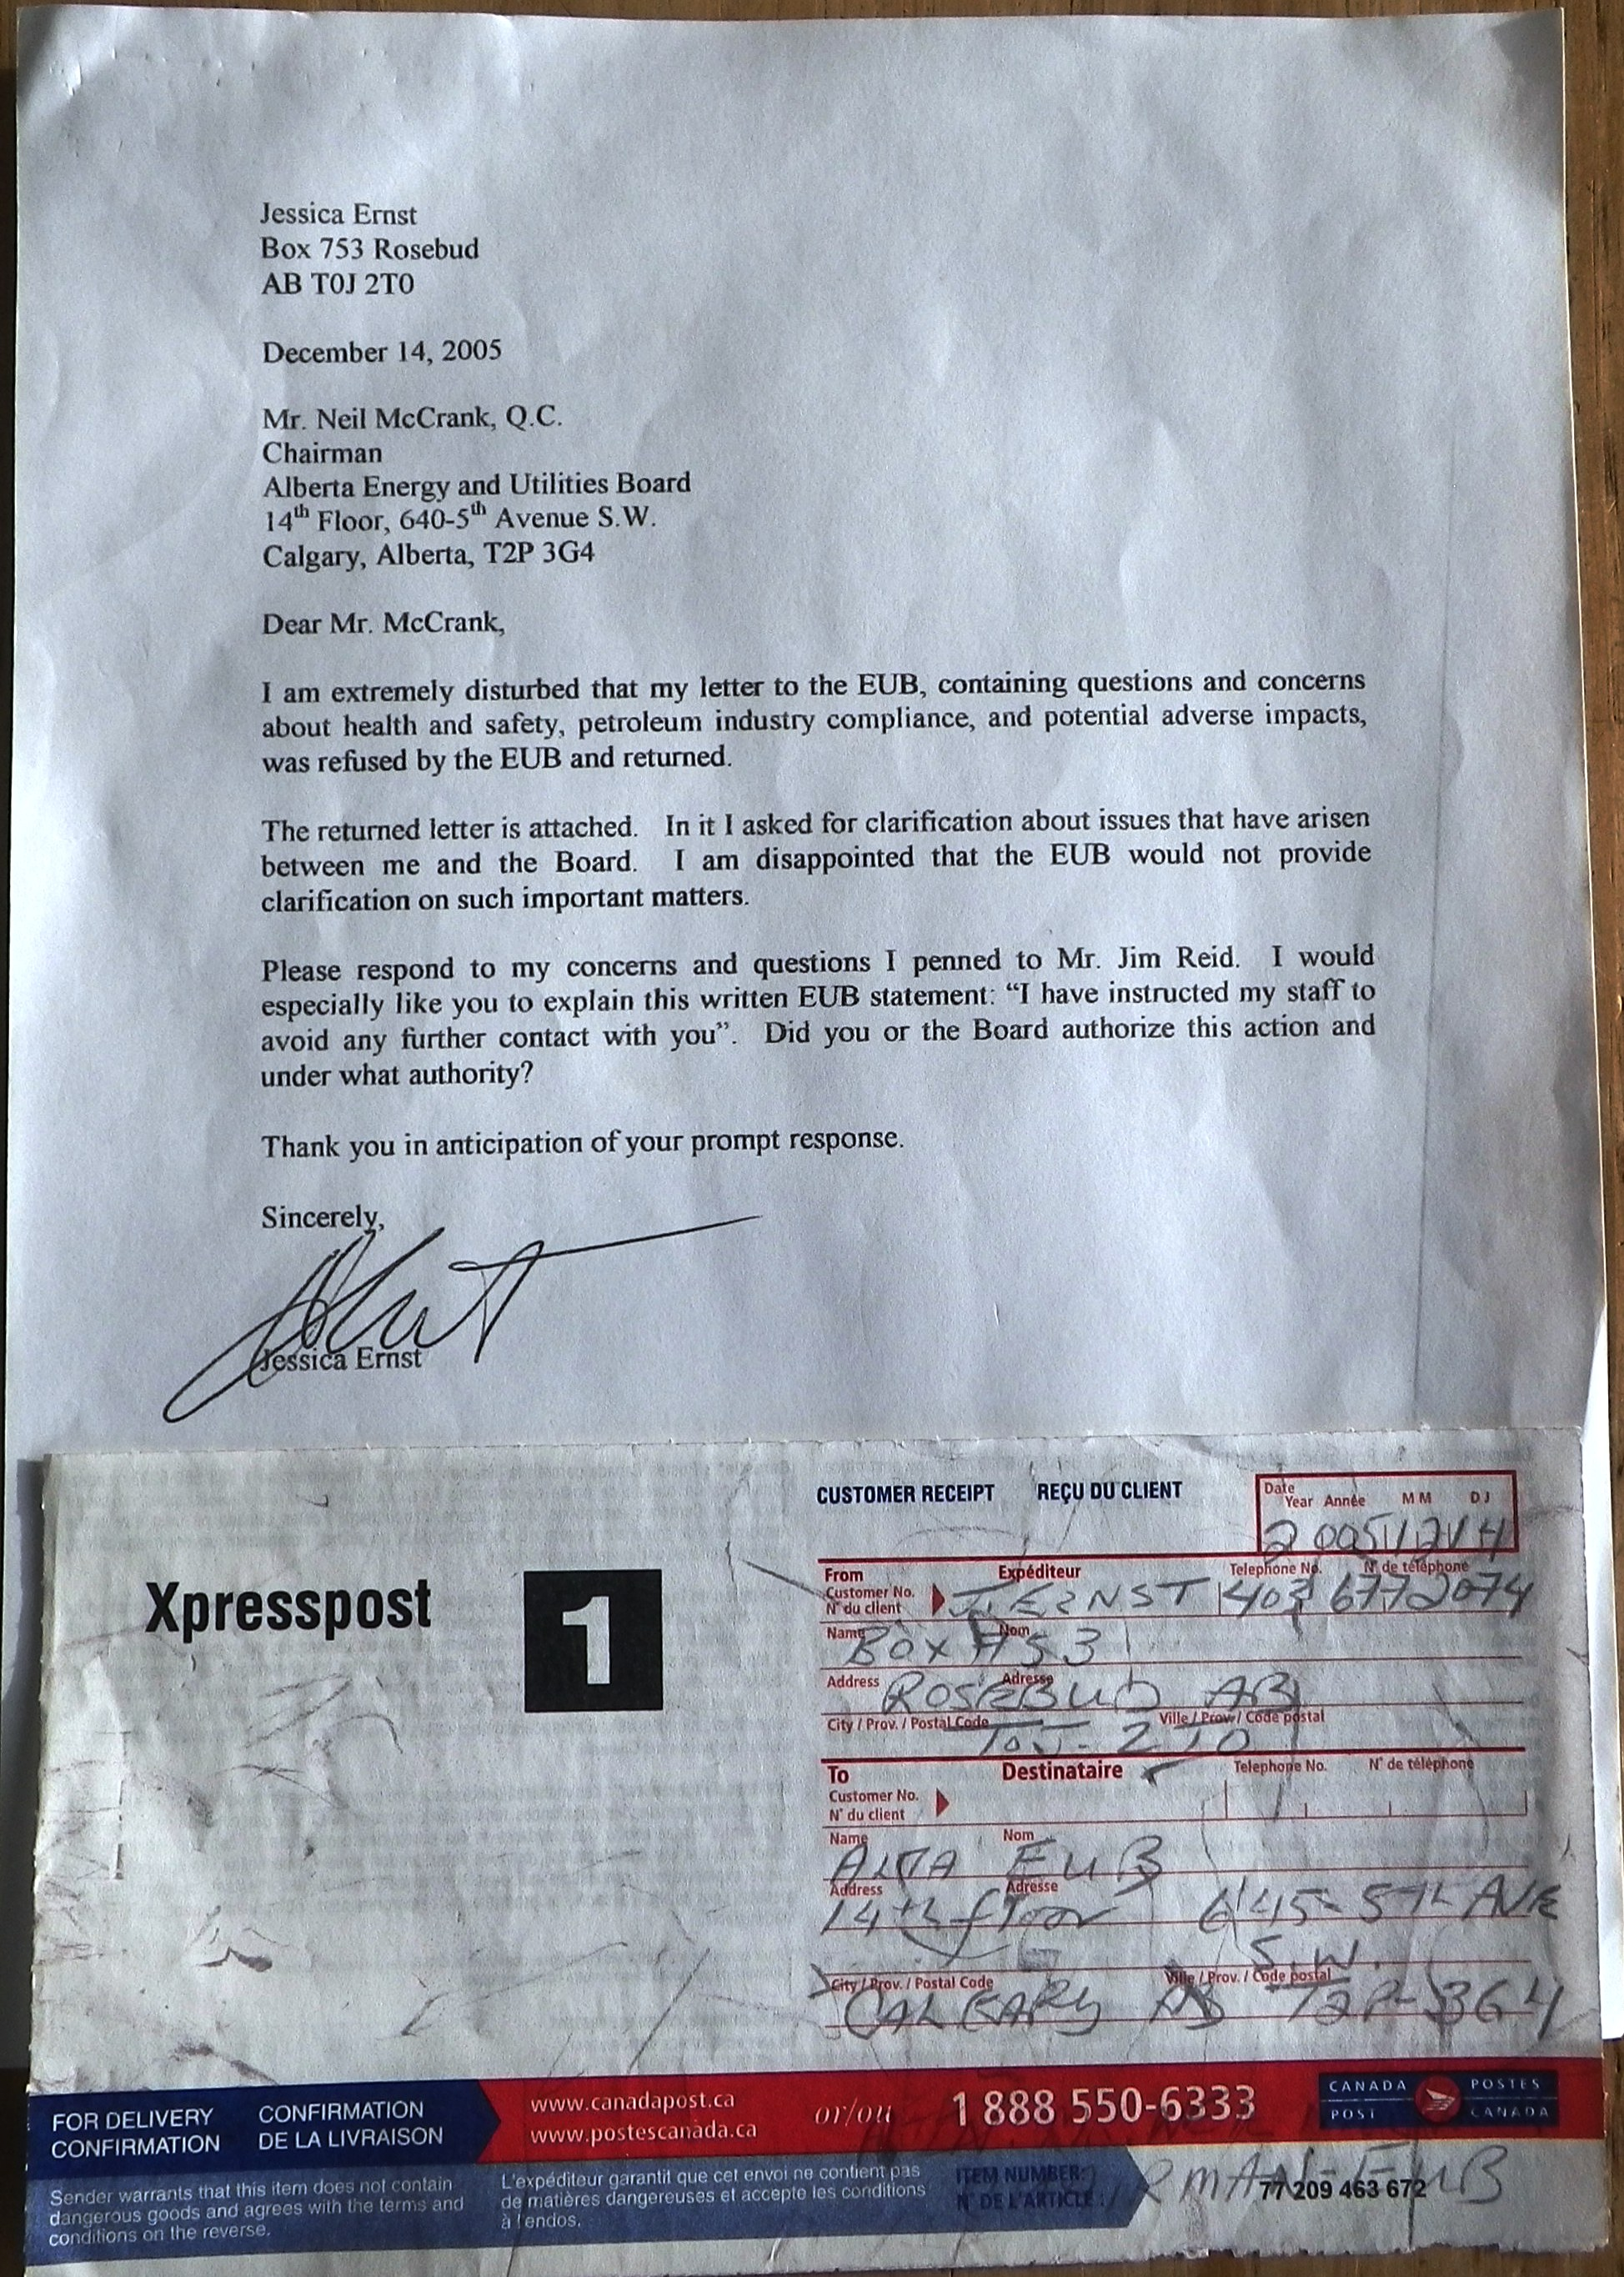 2005 12 14 Ernst letter to McCrank Alberta energy regulator refusing mail from harmed citizens